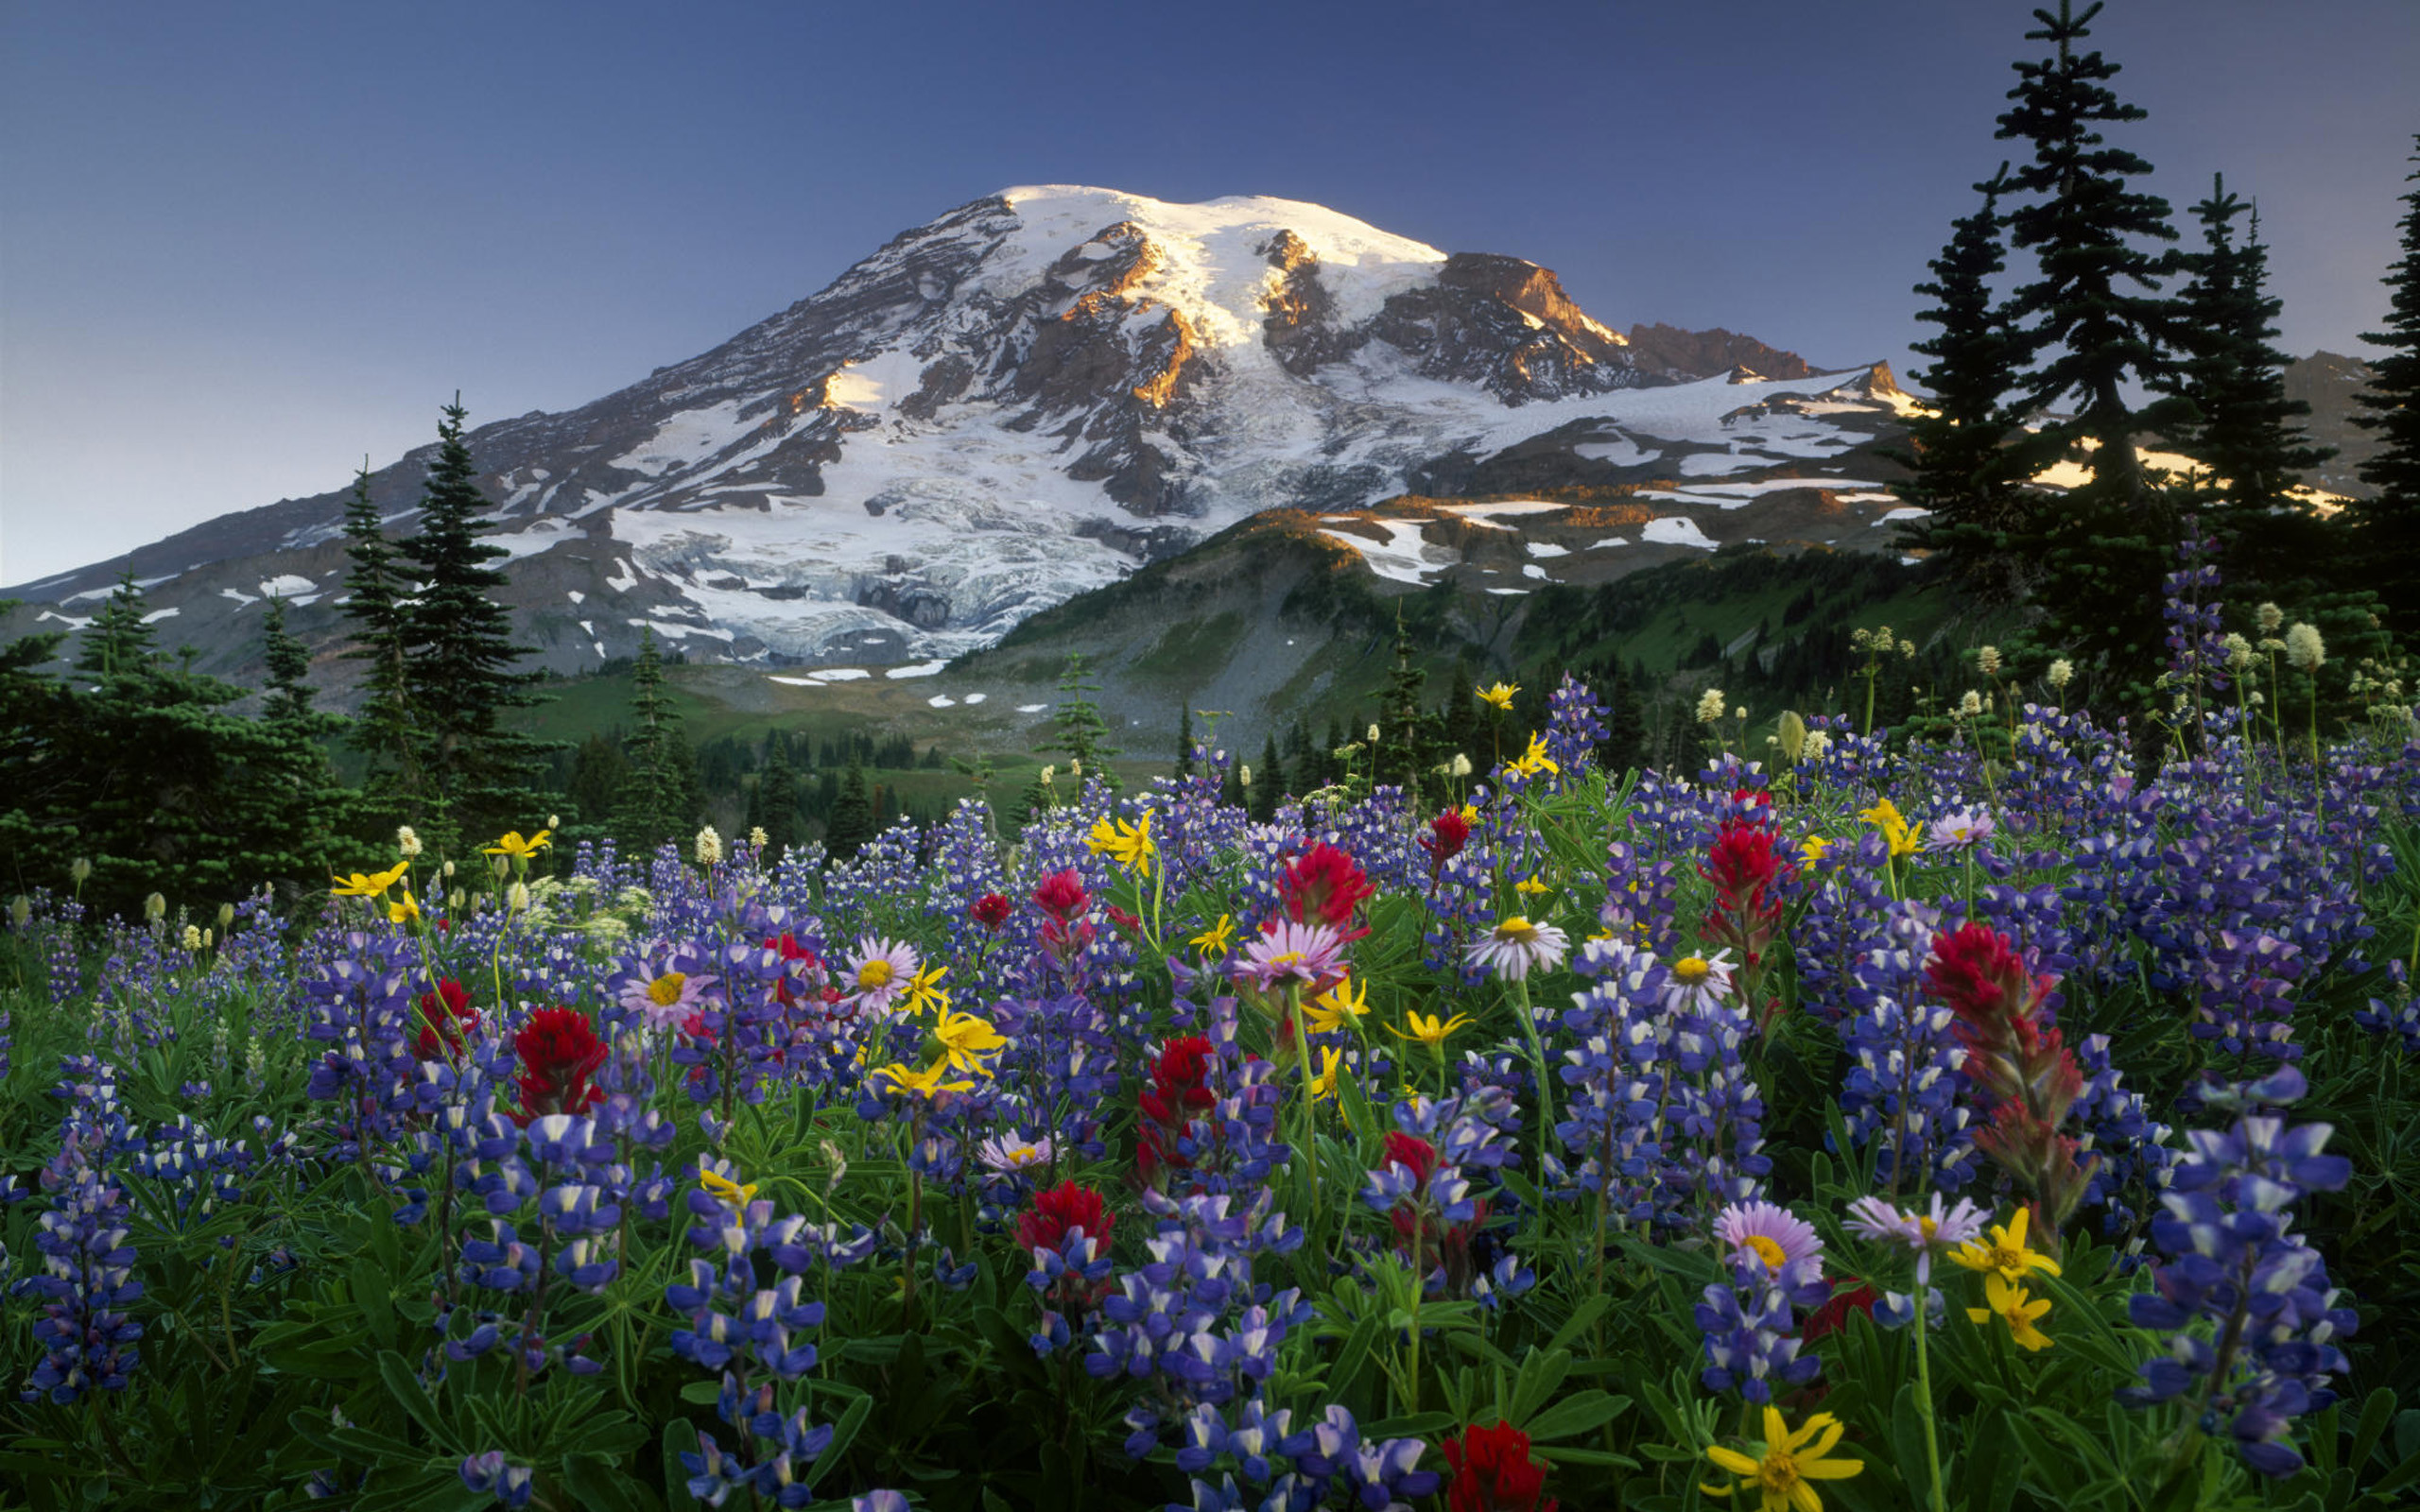 2560x1600 Pacific northwest · Mountains Wallpaper Free Download · Mountains Wallpapers  | Best .